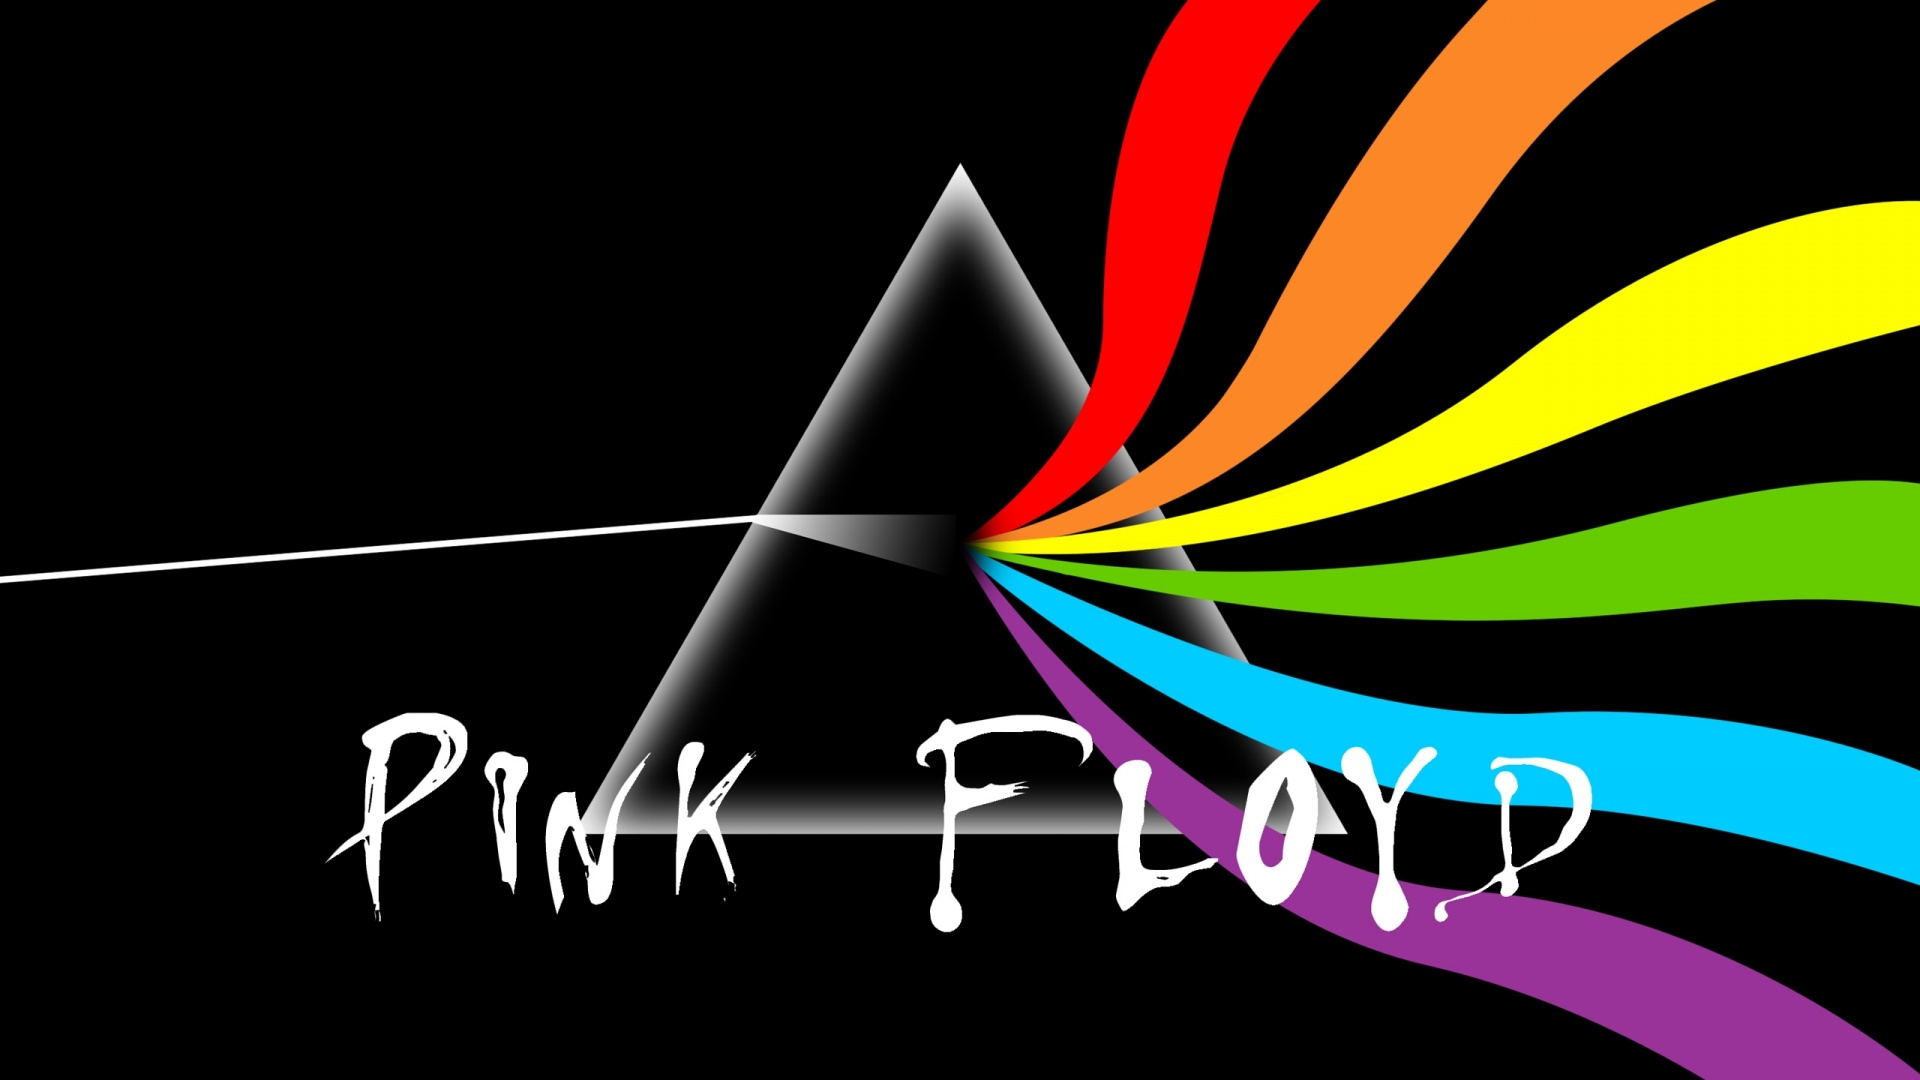 Group Of 1920x1080 Pink Floyd Desktop